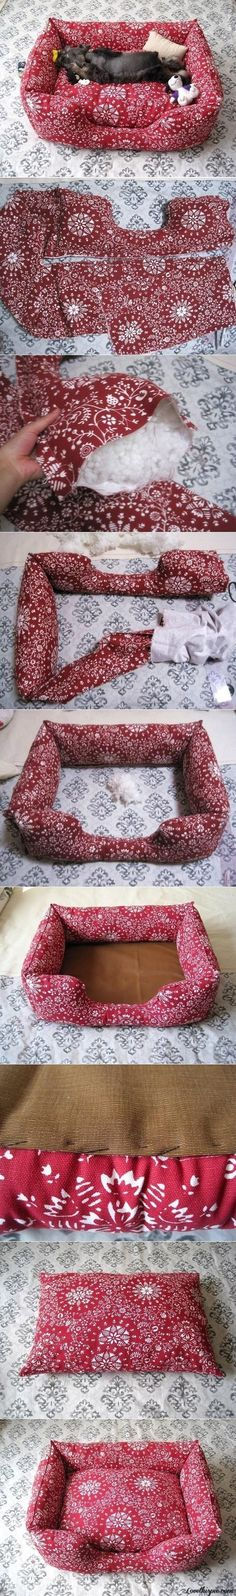 DIY Pets : DIY Fabric Pet Sofa DIY Fabric Pet Sofa diy furniture crafts craft ideas diy ideas home diy pet bed fabric Sharing is caring, don't forget to share ! Fabric Crafts, Sewing Crafts, Sewing Projects, Diy Crafts, Diy Projects, Sewing Hacks, Sewing Tutorials, Sewing Patterns, Free Tutorials